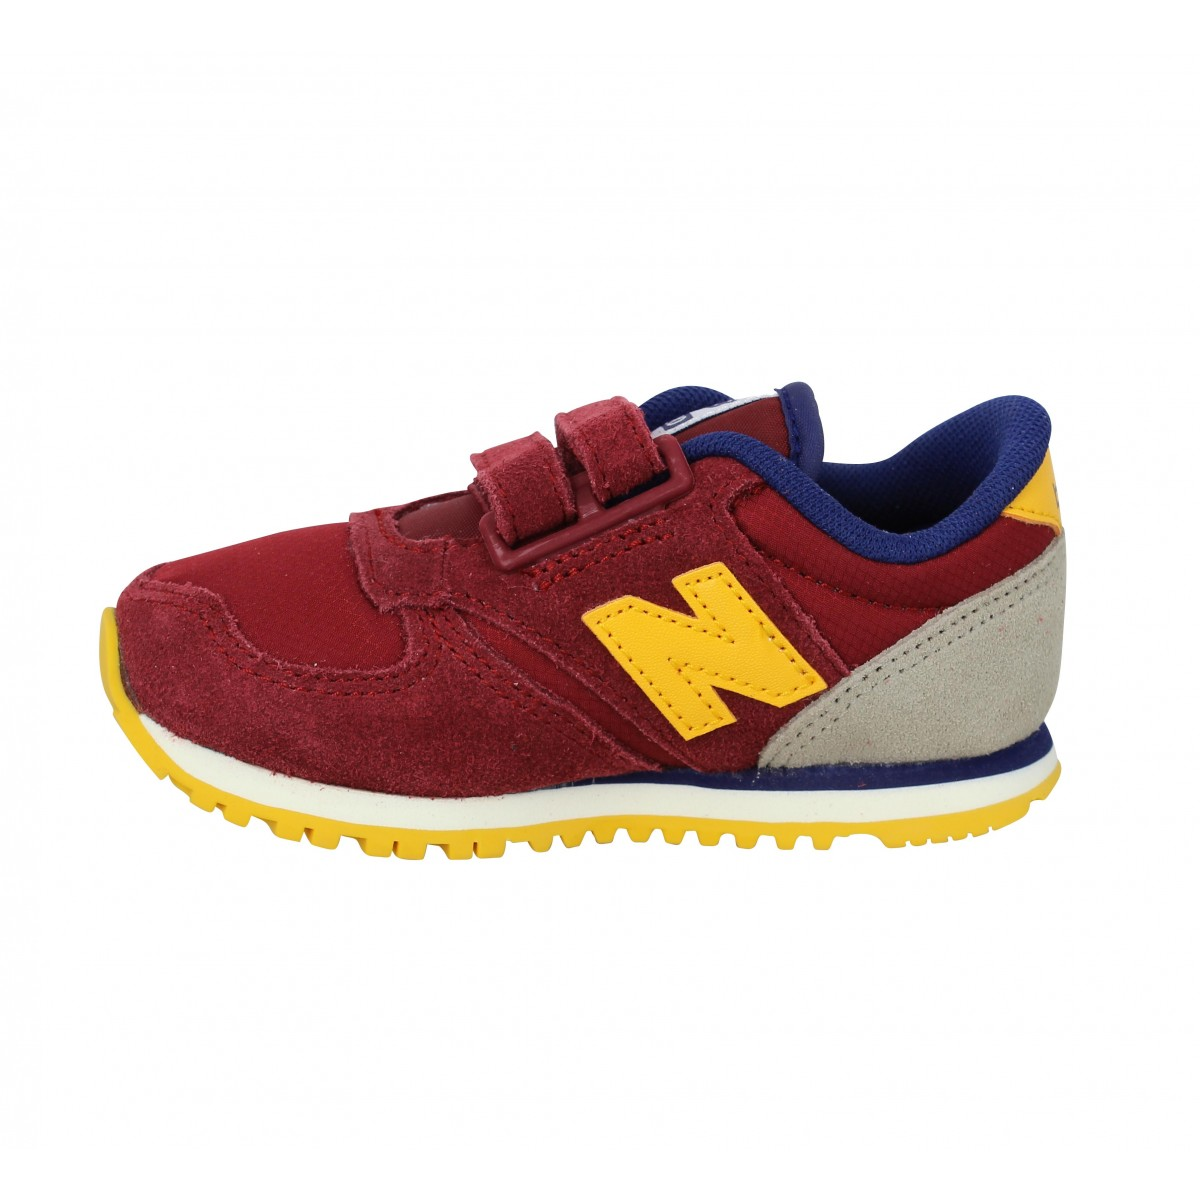 new balance ke 420 enfant bordeaux enfants fanny chaussures. Black Bedroom Furniture Sets. Home Design Ideas